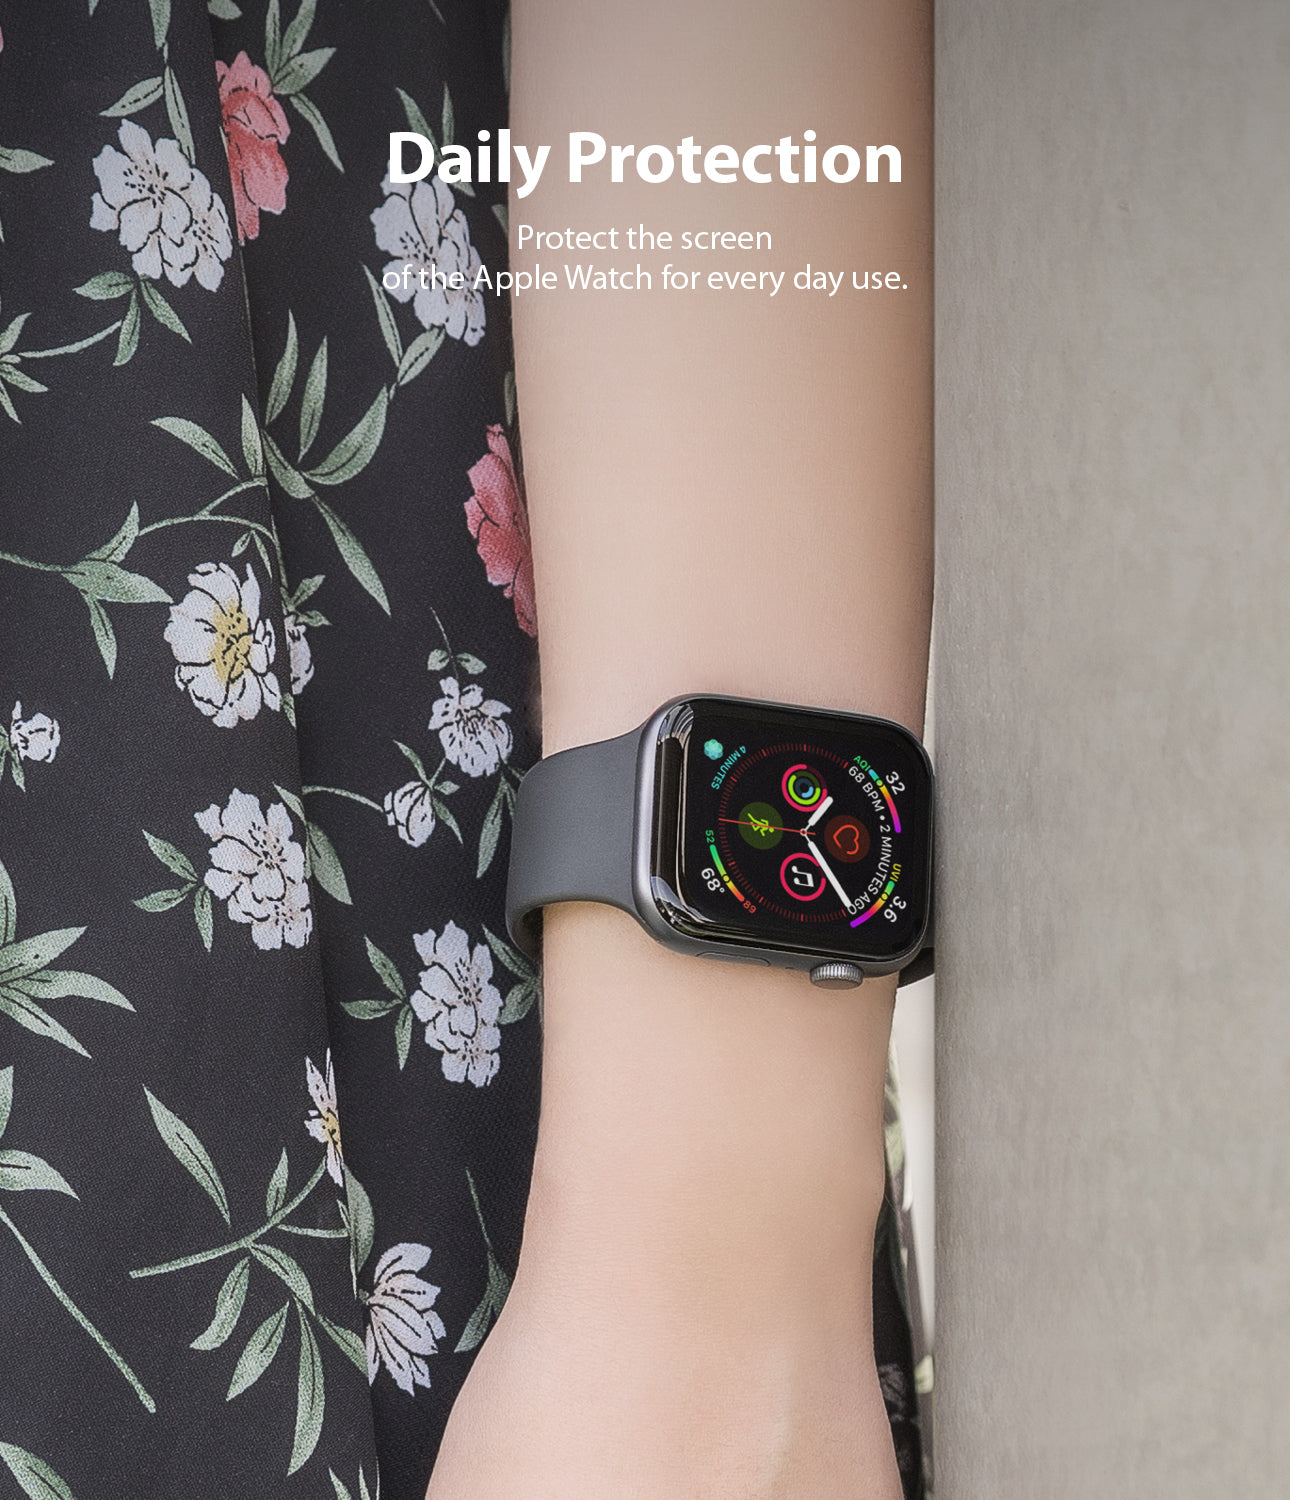 daily protection : protect the screen of the apple watch for everyday use